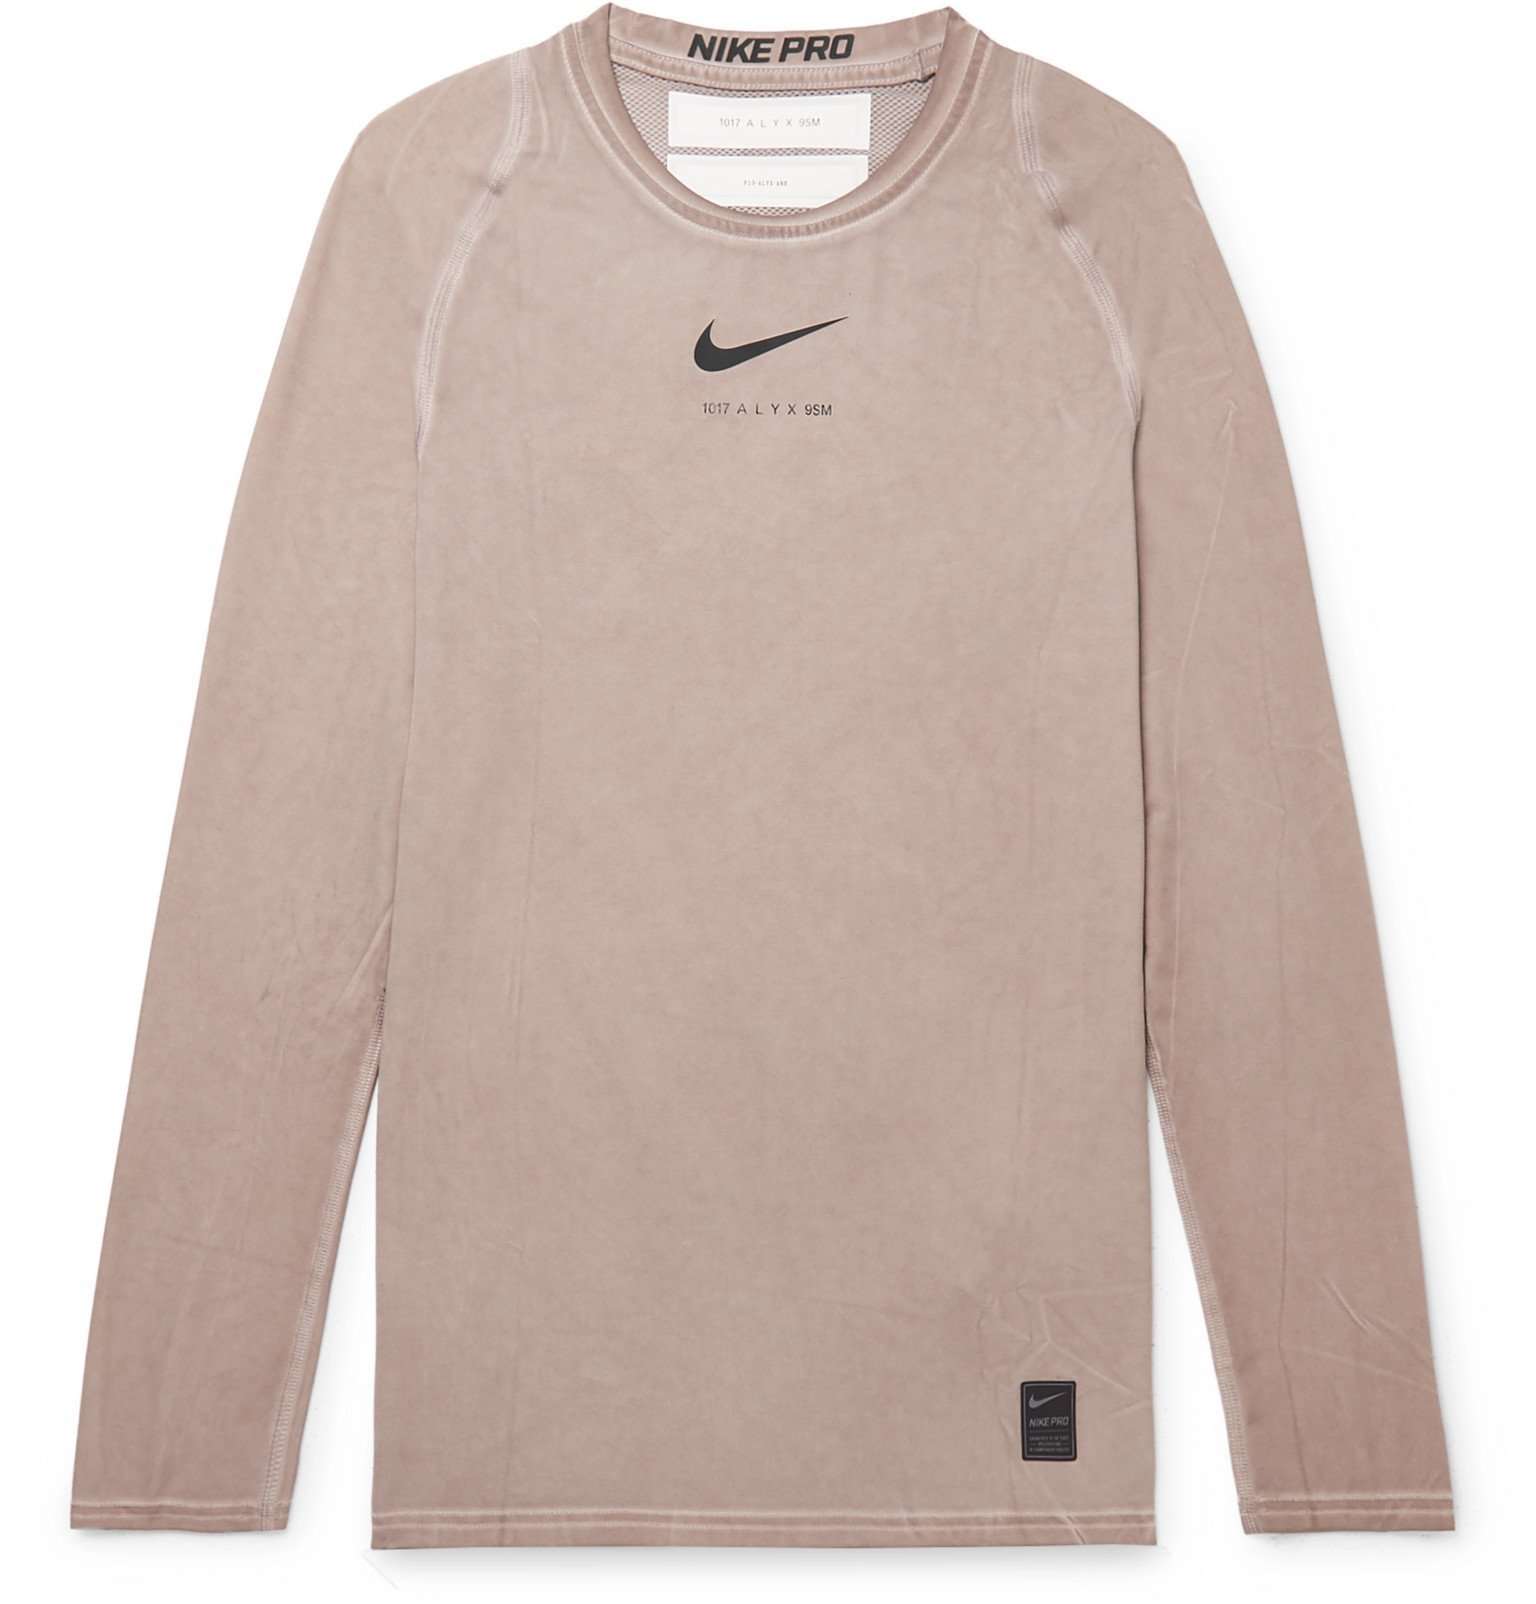 1017 ALYX 9SM - Nike Compression Mesh-Panelled Stretch-Jersey T-Shirt - Brown